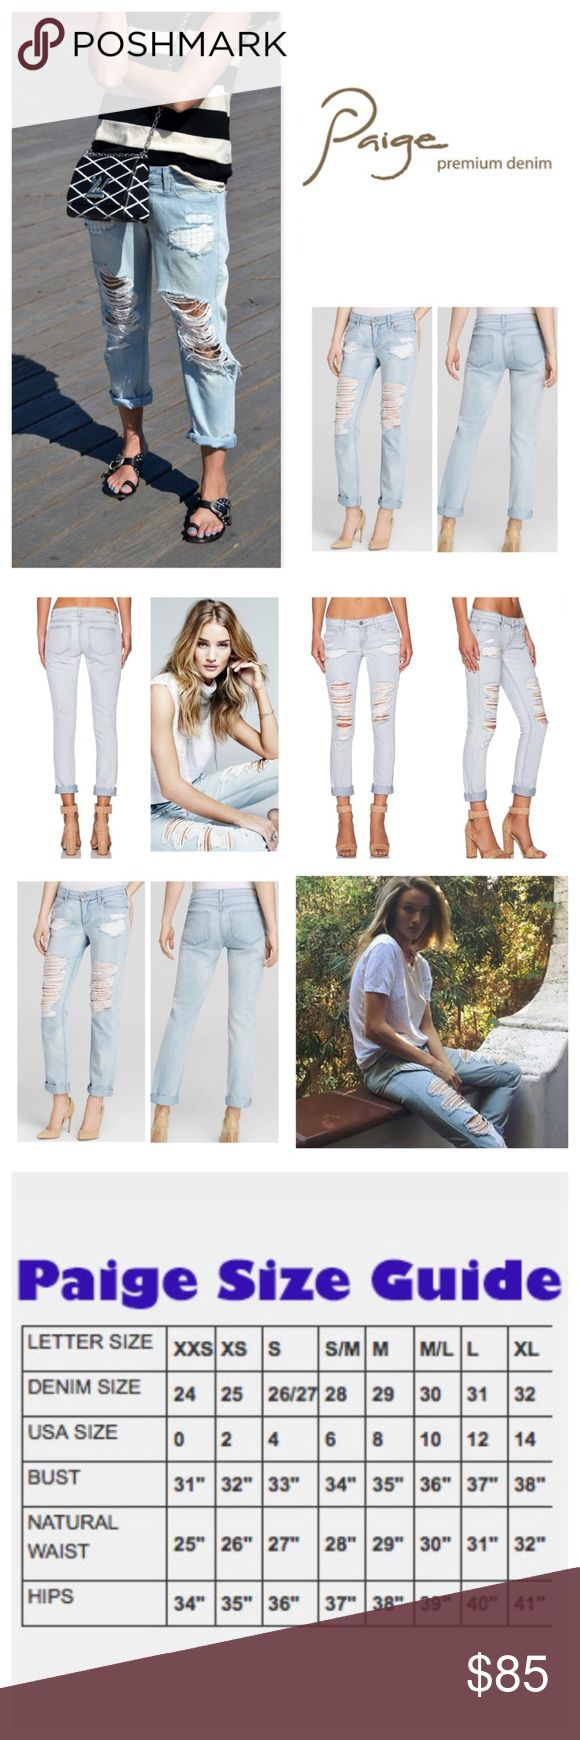 """Anthropologie Paige Jimmy Jimmy Boyfriend.  NWT. Anthropologie Paige Sawyer Destructed Jimmy Jimmy Skinny Boyfriend Skinny, 100% cotton, machine washable, 30"""" waist, 8.25"""" front rise, 13"""" back rise, 39.5"""" inseam, 12.5"""" leg opening all around, boyfriend skinny jeans shredded and distressed for an effortless lived-in look, narrows at the knee, silver-tone hardware, five pockets, belt loops, zip fly button closure, measurements are approx.  NO TRADES Anthropologie Jeans Boyfriend"""